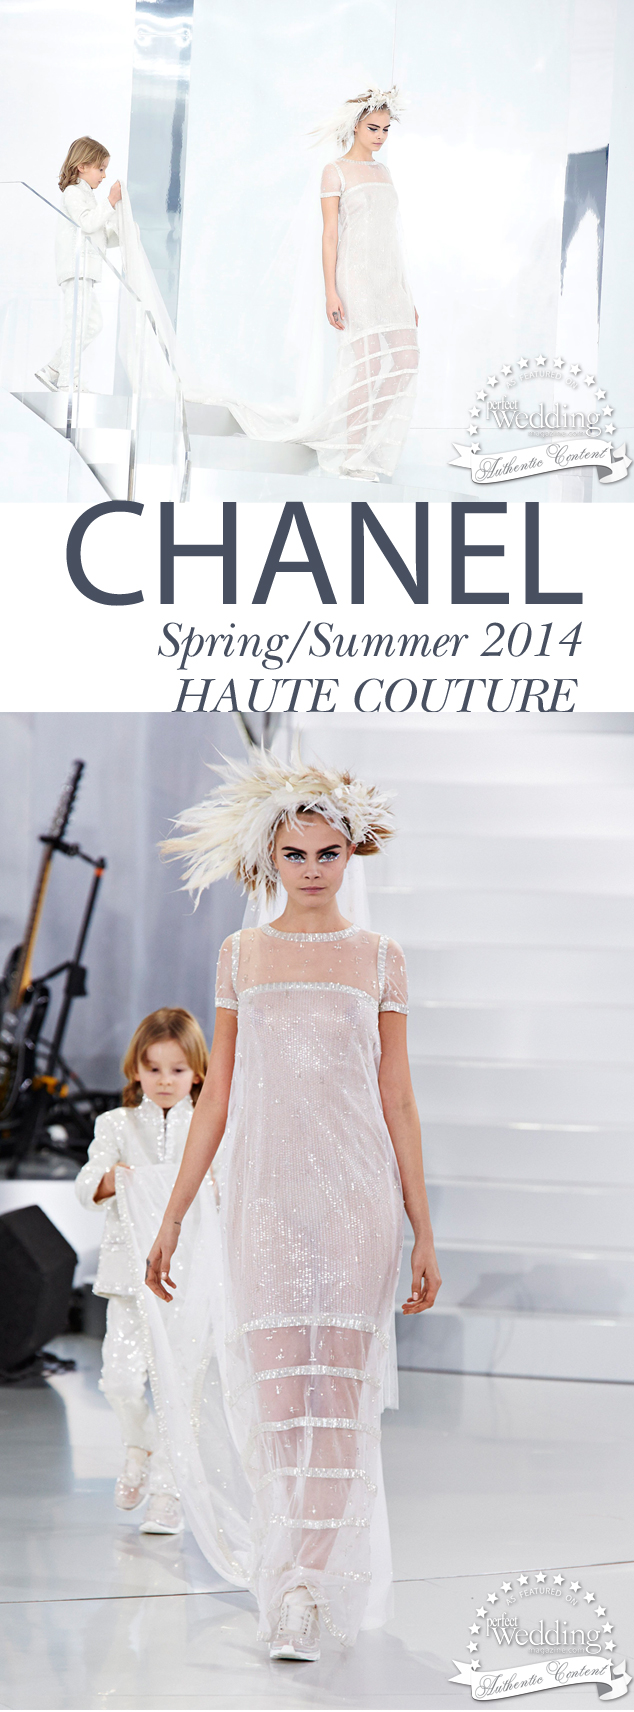 Chanel Spring Summer 2014 Haute Couture, Perfect Wedding magazine, Chanel Bride